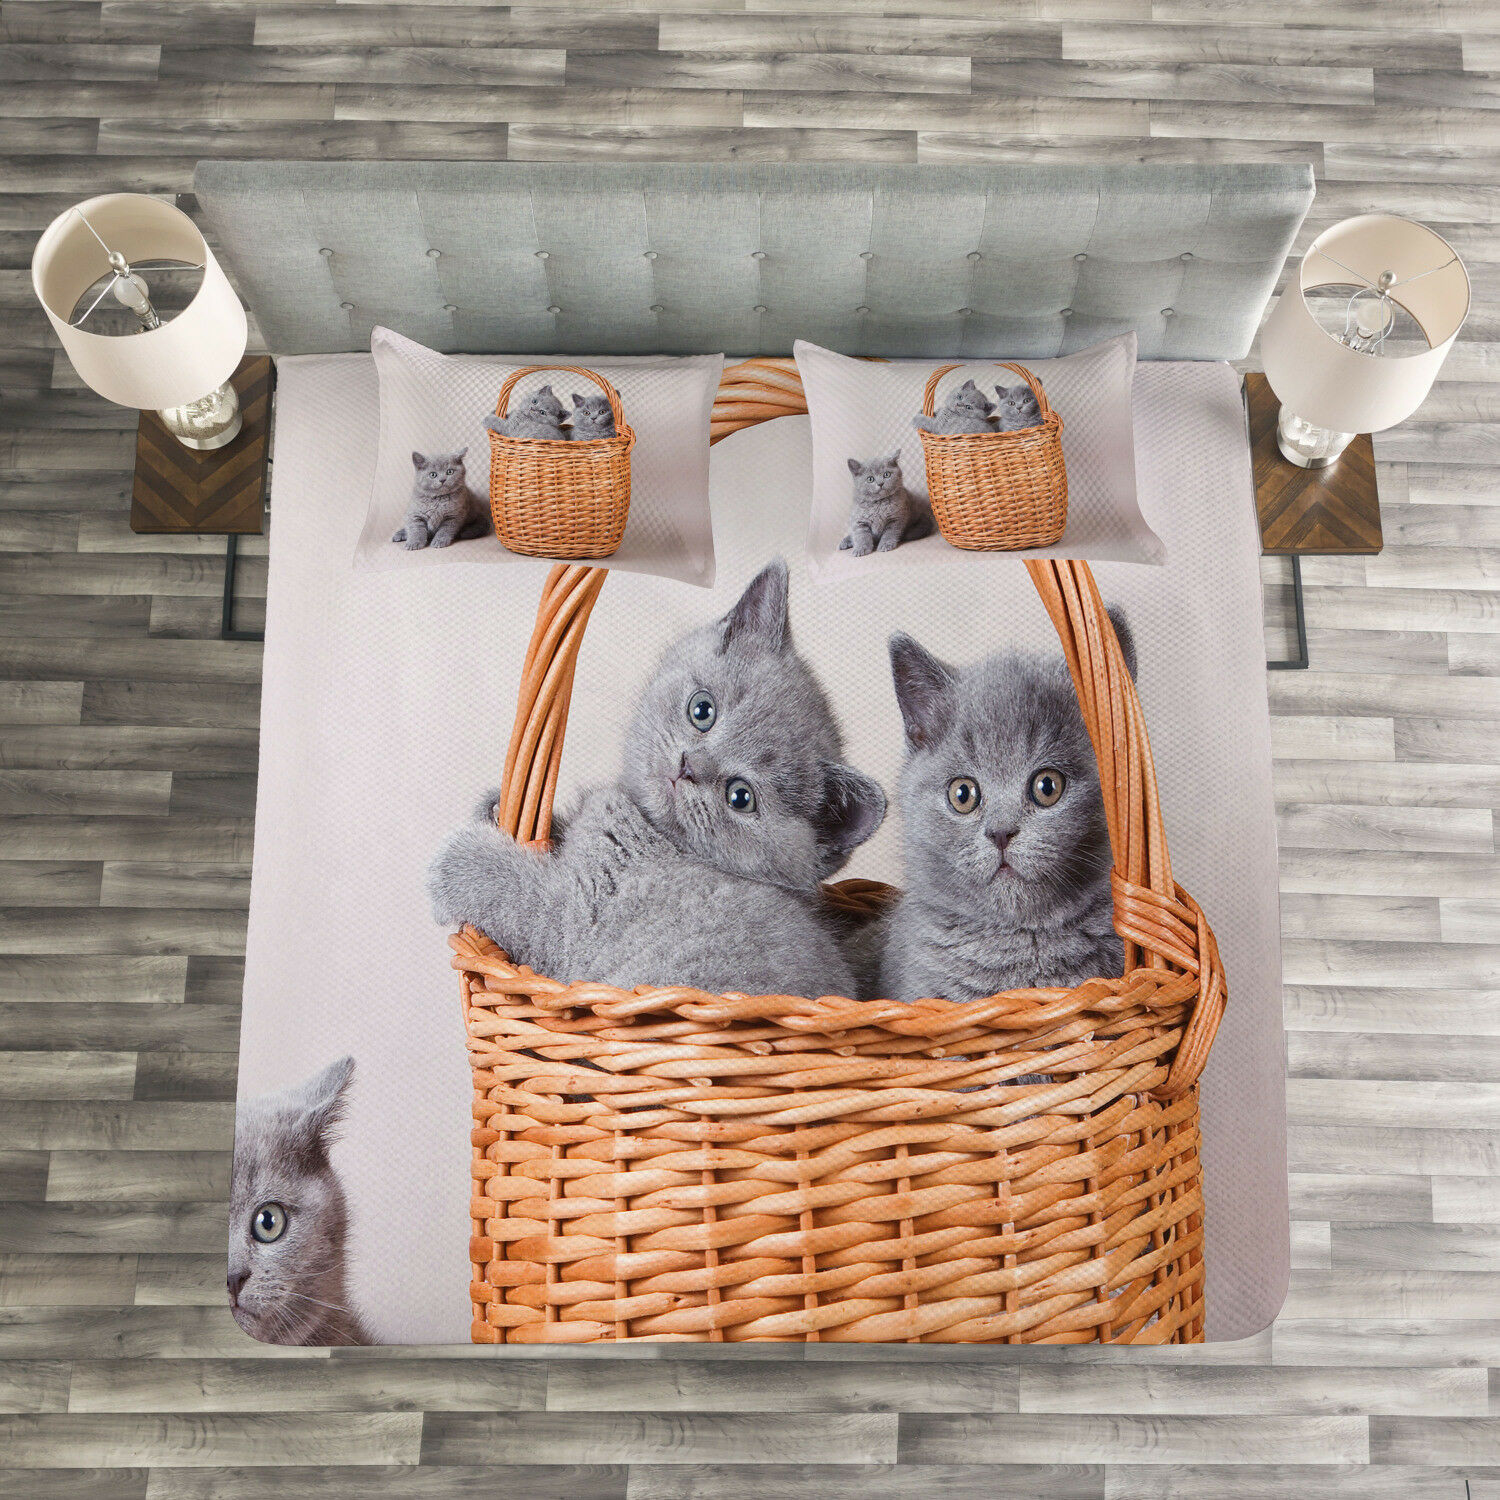 Kitten Quilted Bedspread & Pillow Shams Set, British Cats in Basket Print